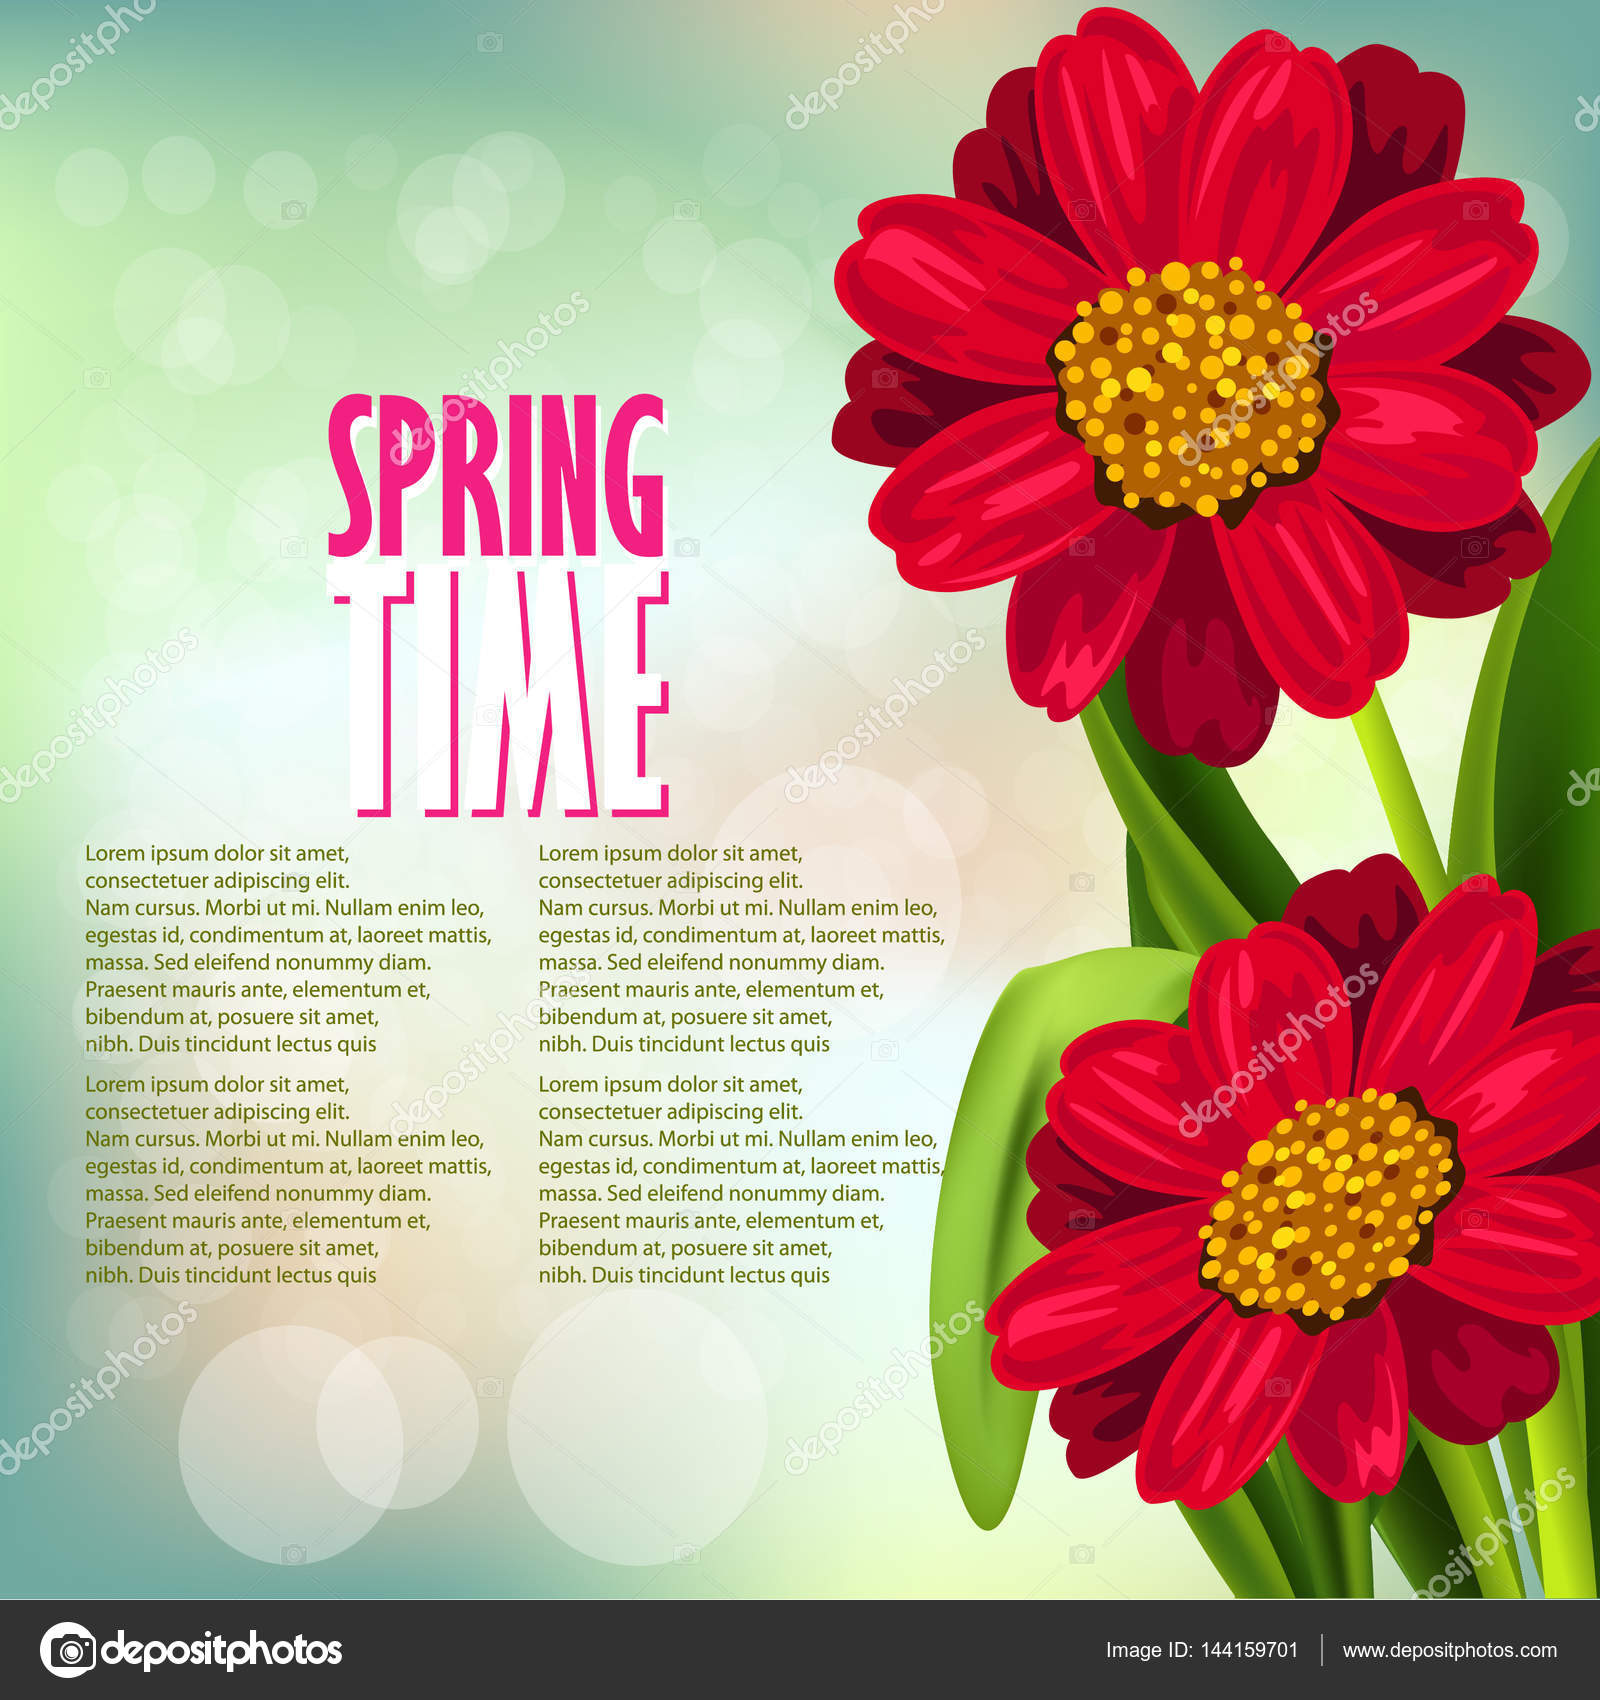 Fresh spring flowers stock vector vedvidarts 144159701 fresh spring flowers stock vector mightylinksfo